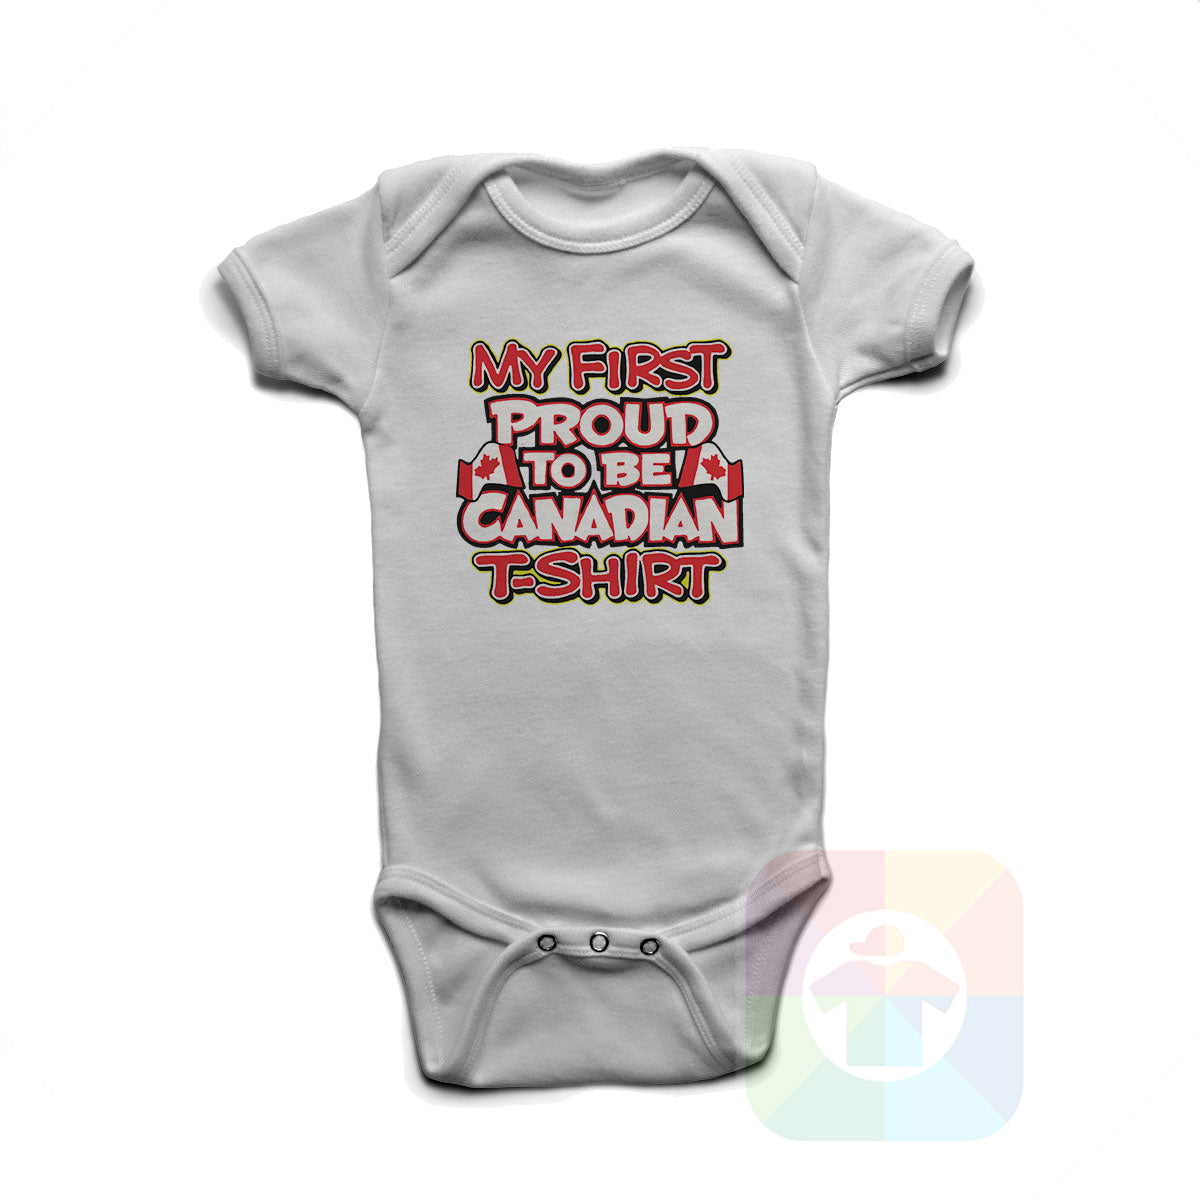 A WHITE Baby Onesie with the  ' Baby onesie 'MY FIRST PROUD TO BE CANADIAN TSHIRT' kids funny novelty design. #8270 / New Born, 6m, 12m, 24m Sizes ' design.